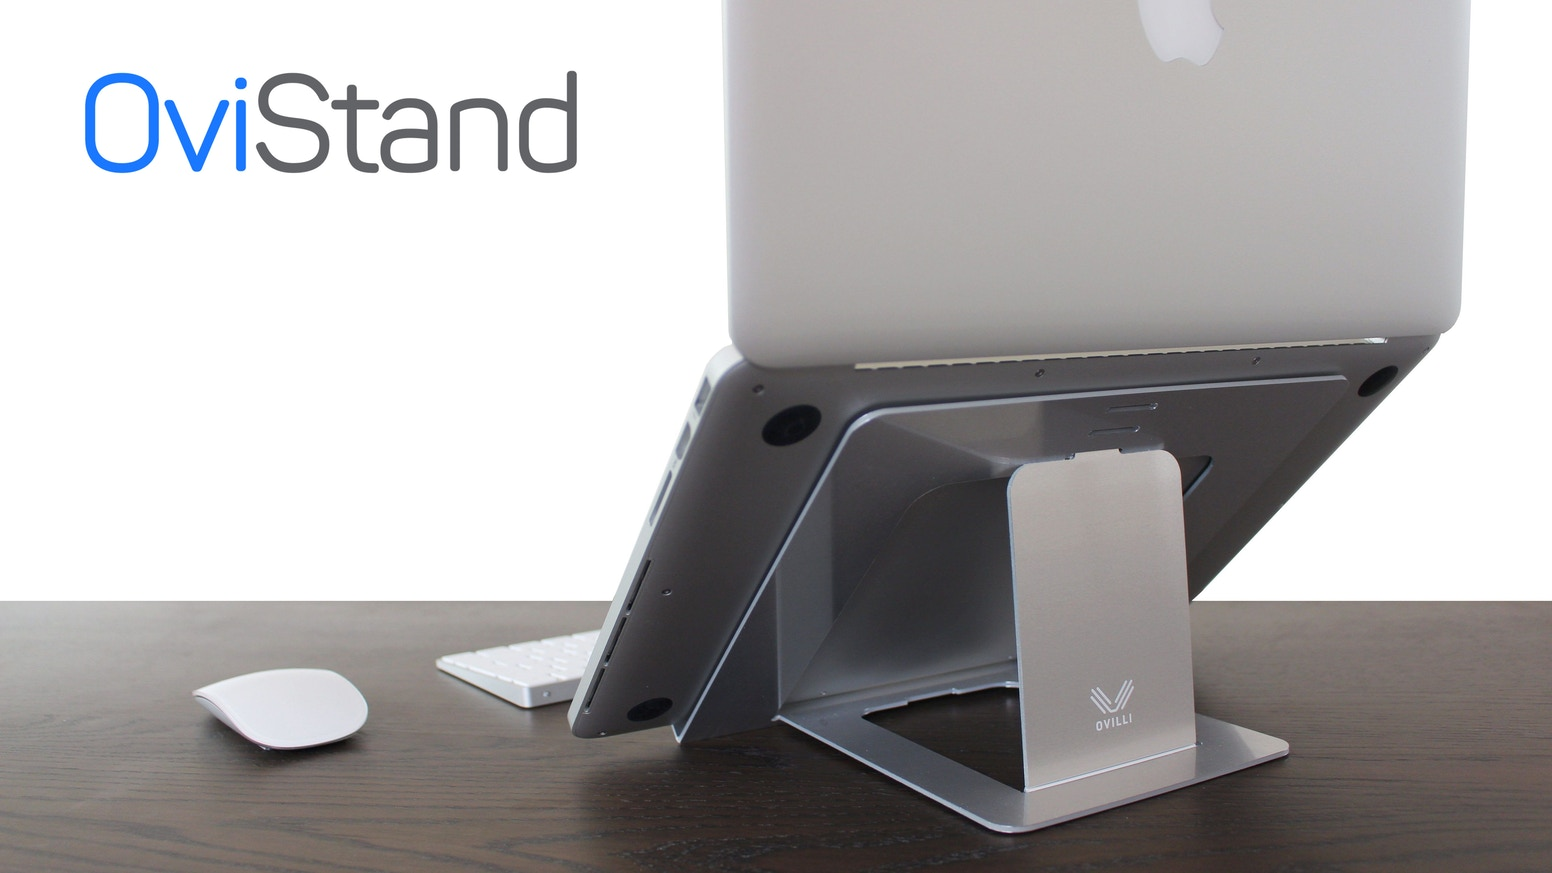 A tailor made, ultra light and super thin laptop stand in 4 sizes for a perfect fit for your laptop and tablet. We are live at www.ovistand.com